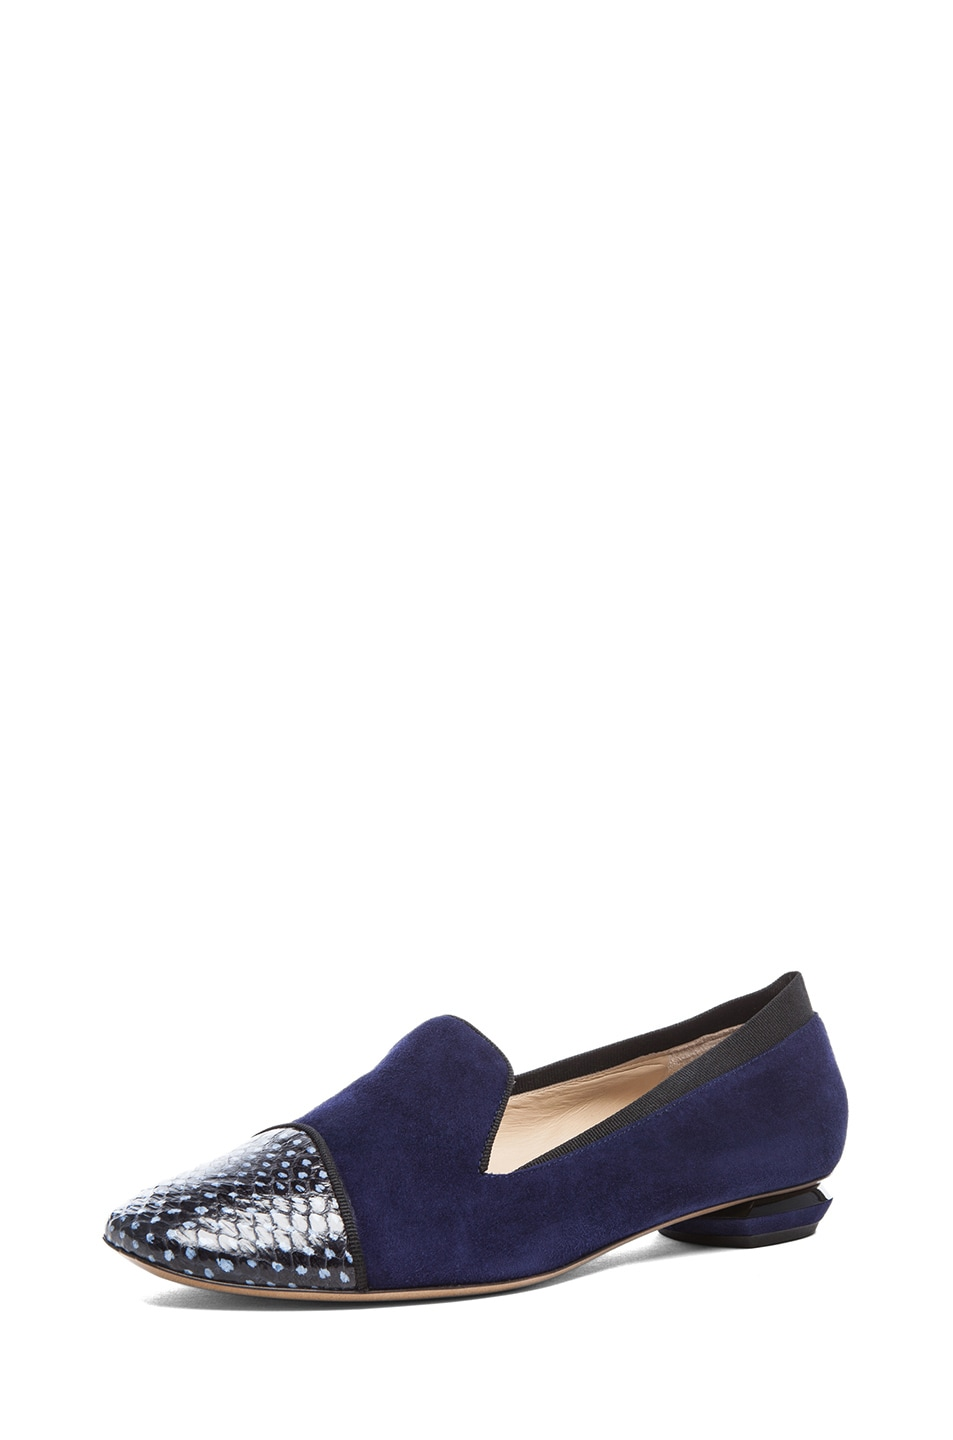 Image 2 of Nicholas Kirkwood Suede Loafers in Black & Indigo